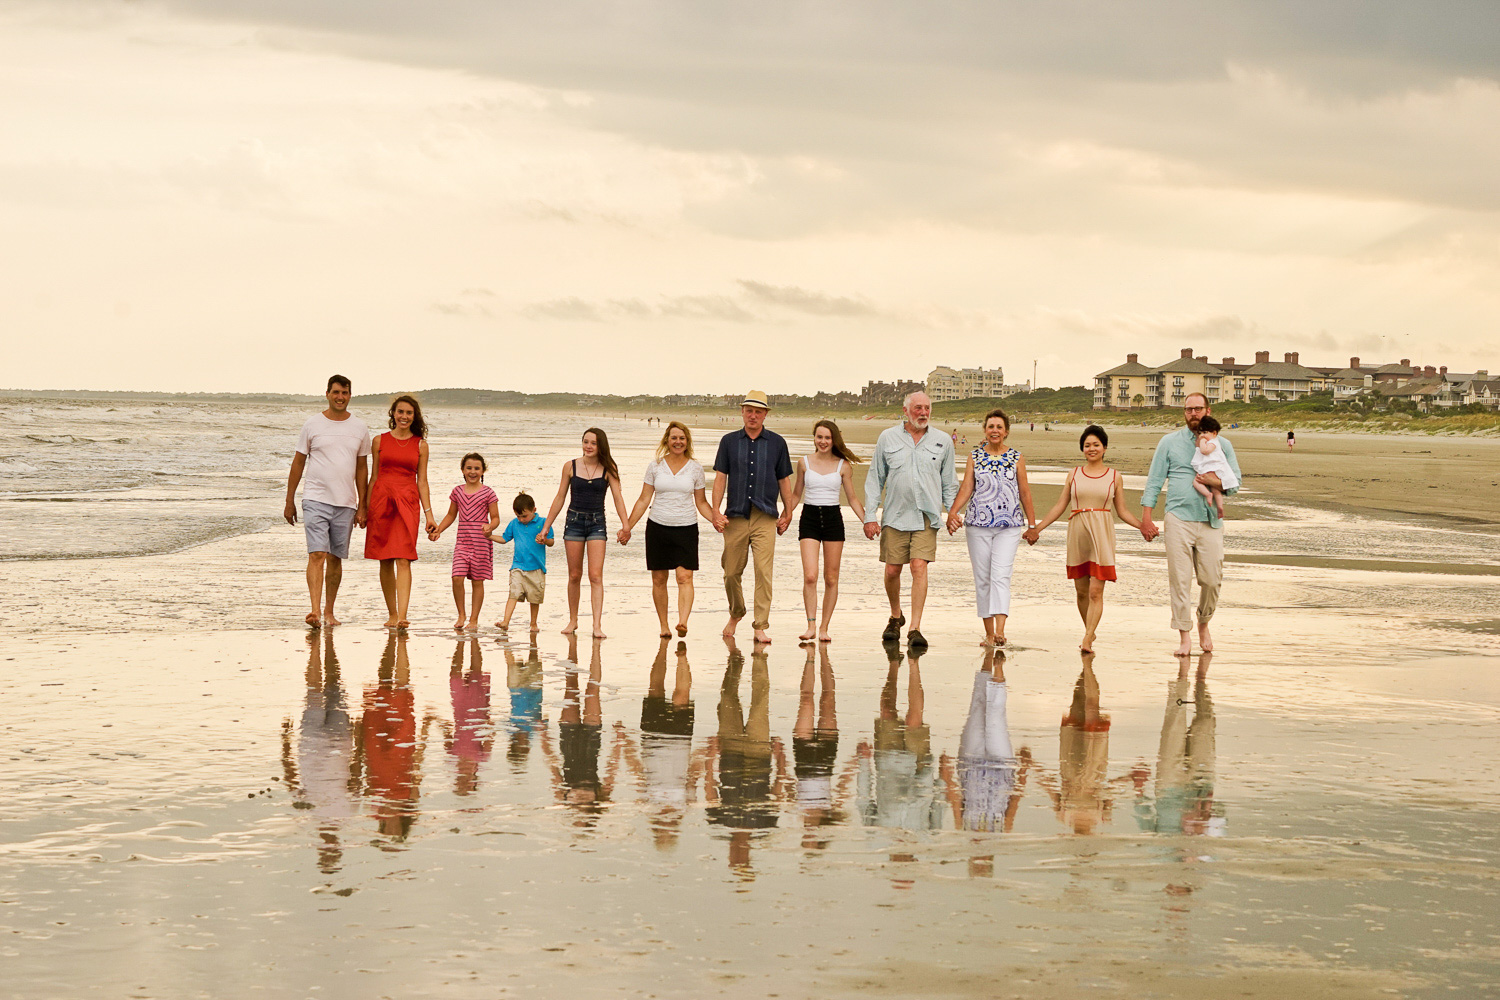 beach_portraits_beaufort-112.jpg